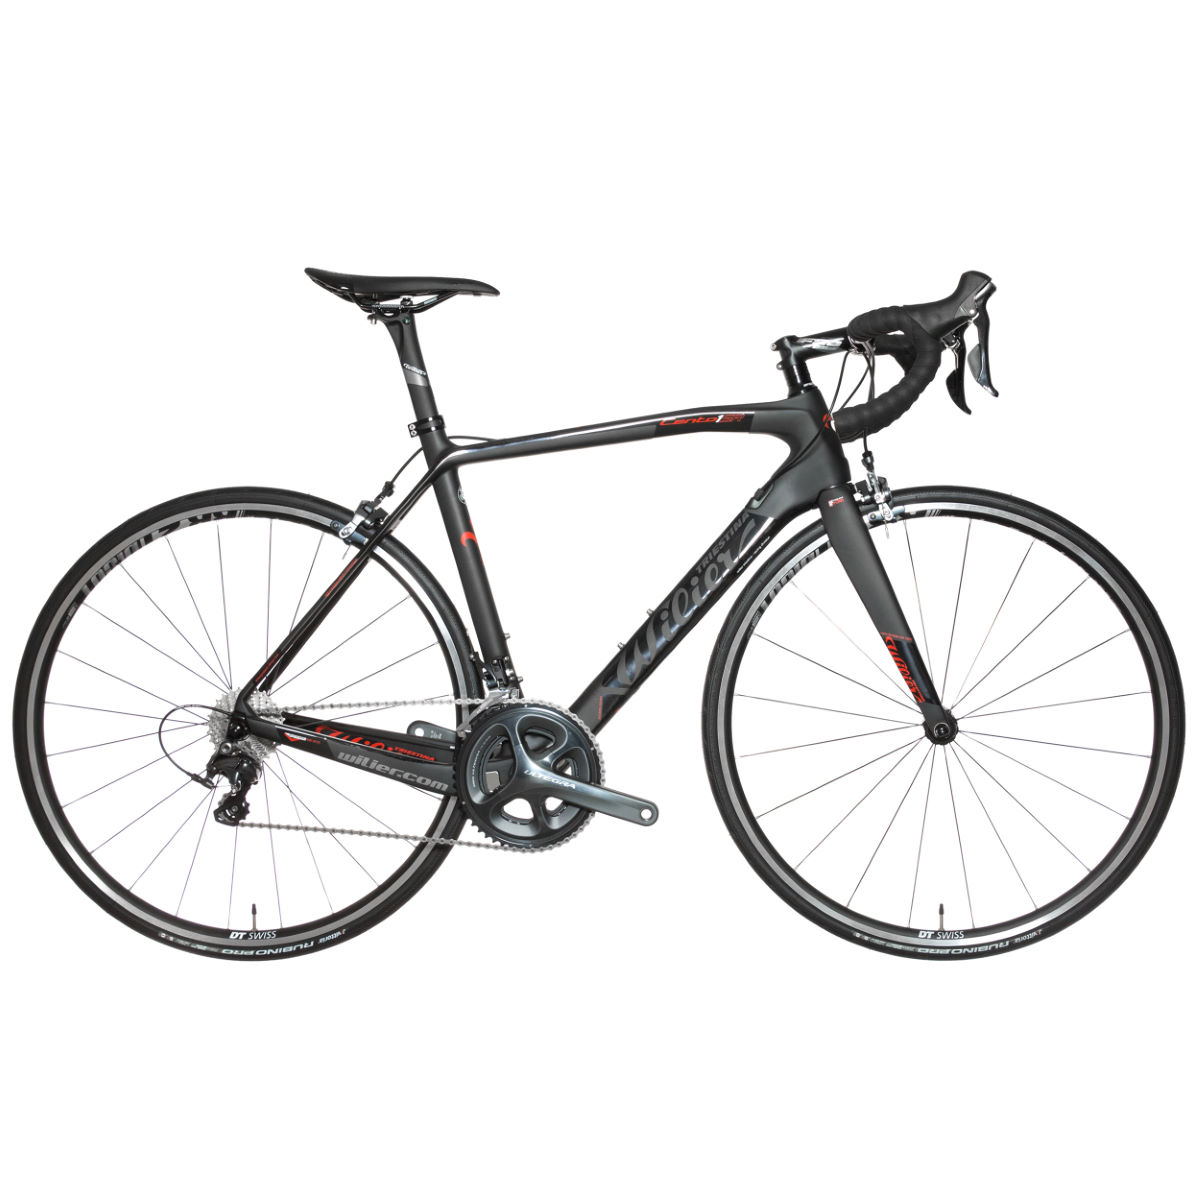 wilier cento 10 sr ultegra 2017 road bike road bikes at cycling bargains